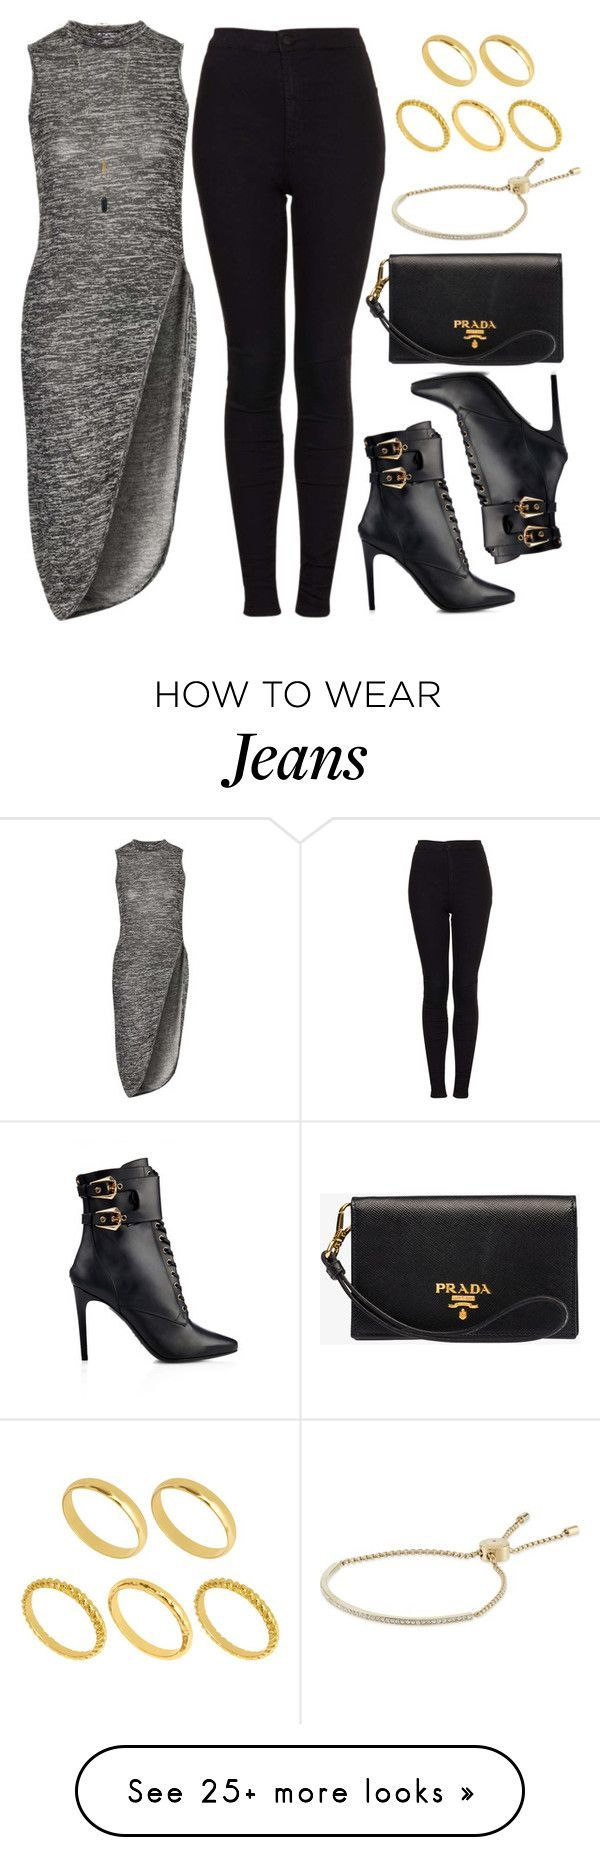 """Style #9843"" by vany-alvarado on Polyvore featuring Topshop, Balmain, Prada, Michael Kors, ASOS, women's clothing, women, female, woman and misses"